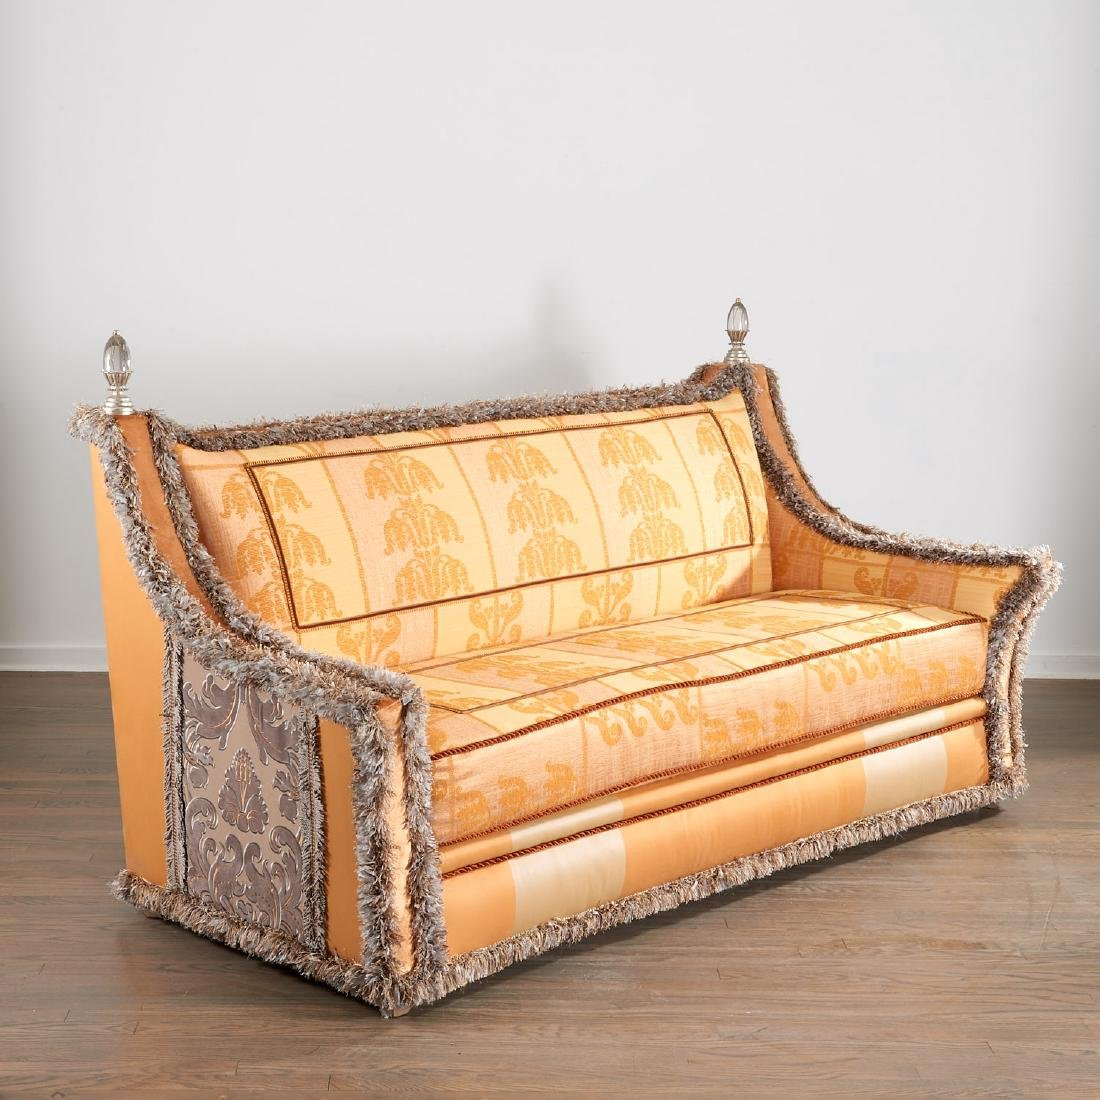 Extravagant custom upholstered sofa